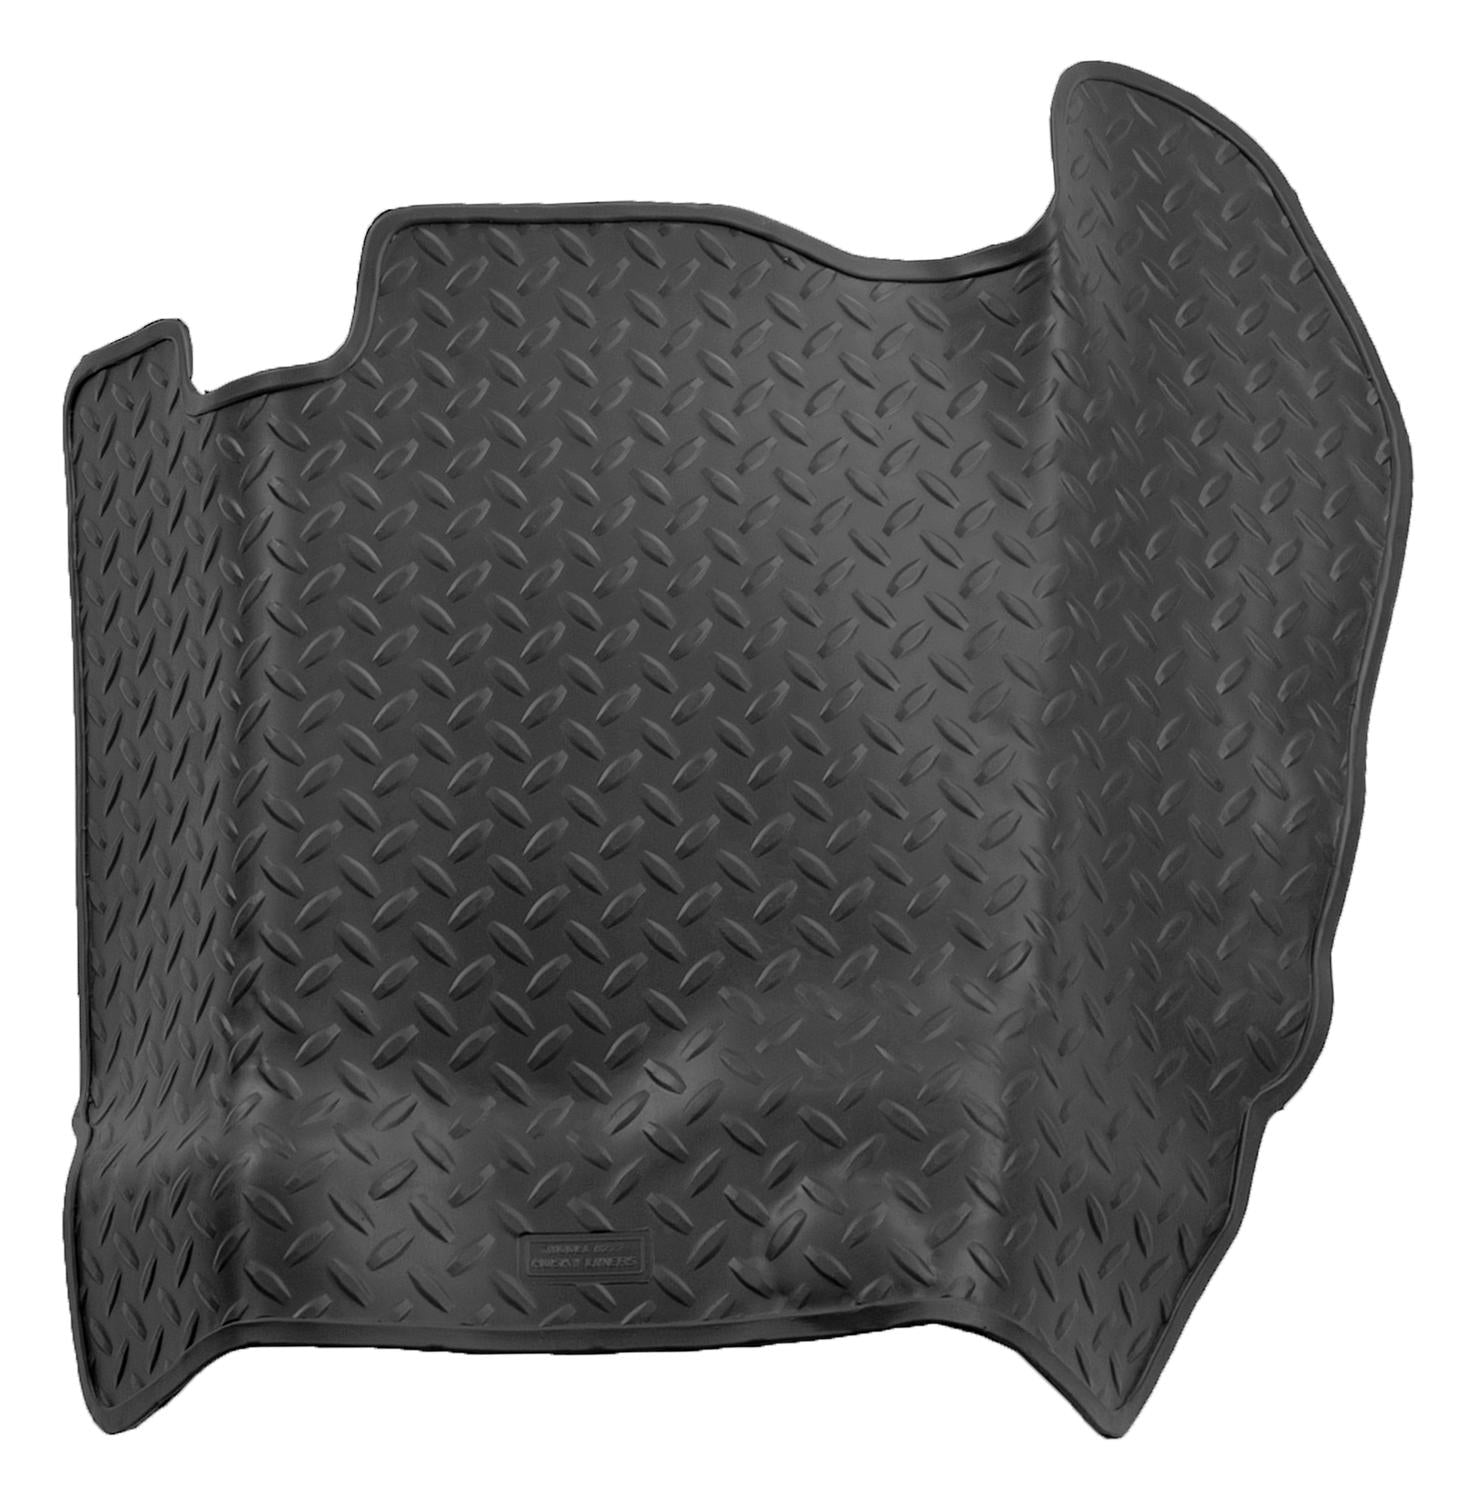 1999-2006 Chevrolet Silverado 1500 Transmission:Automatic Standard Cab Pickup Center Hump Floor Liner